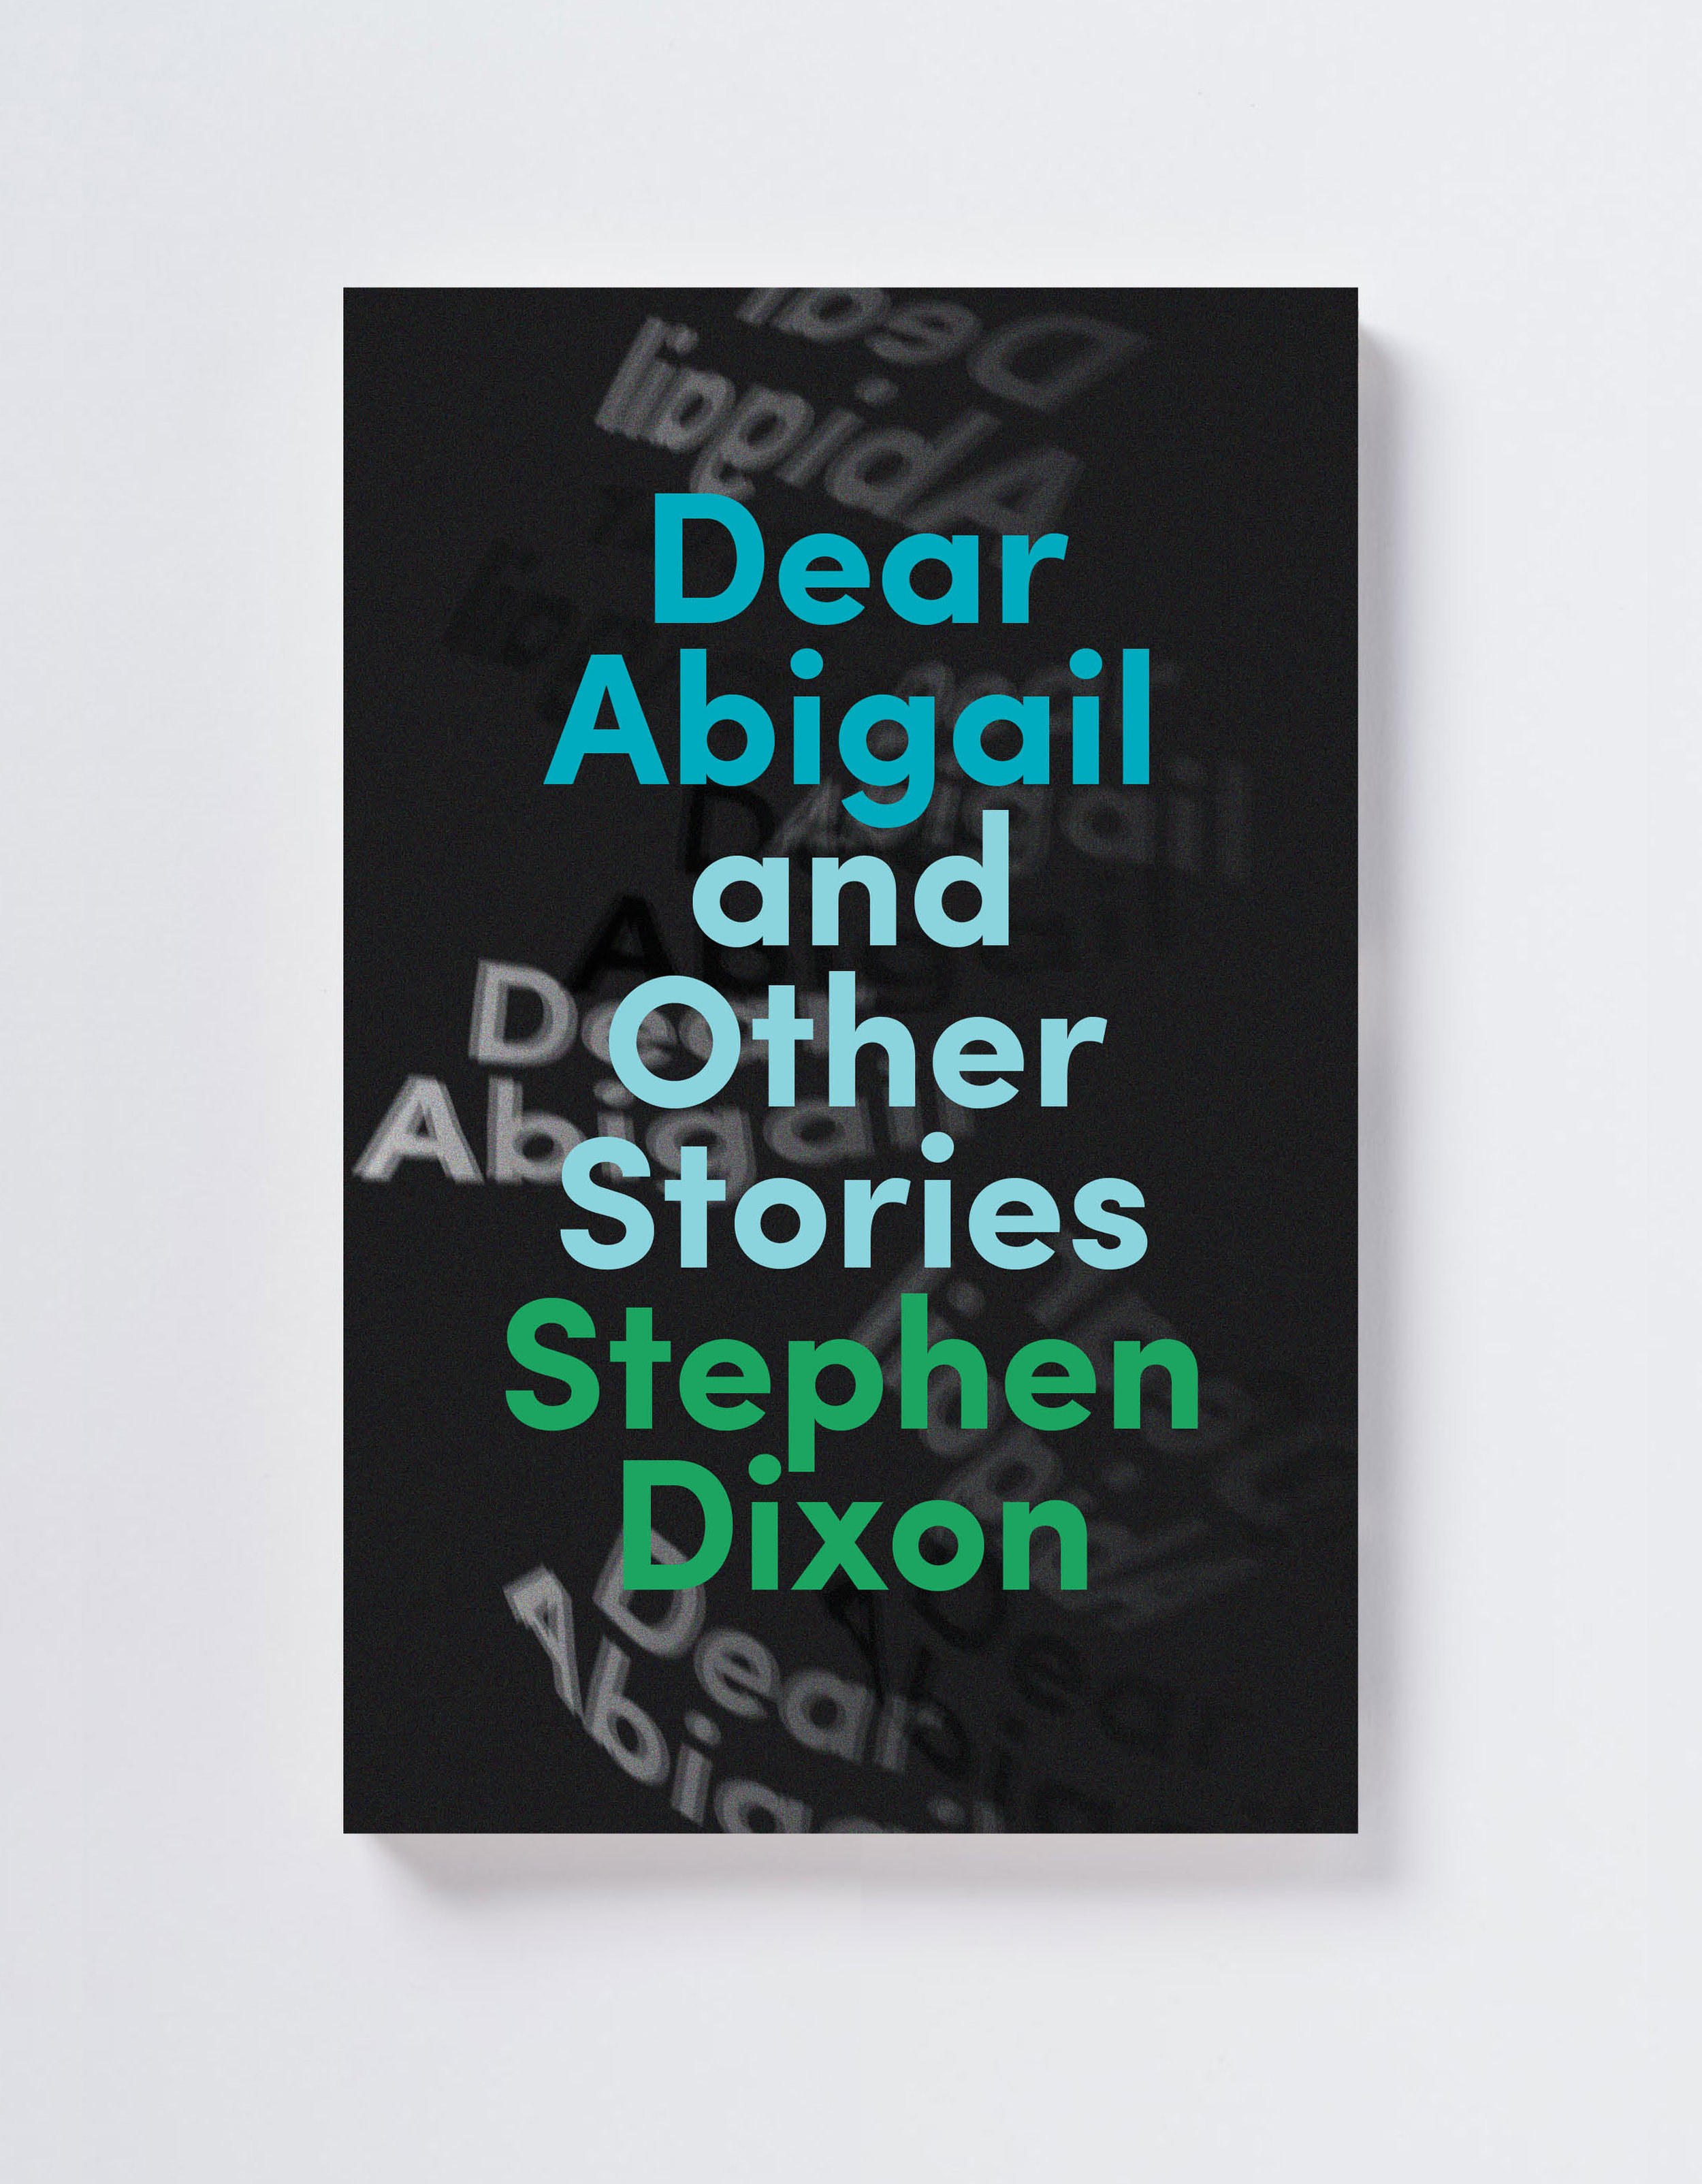 DEAR ABIGAIL AND OTHER STORIES  by Stephen Dixon